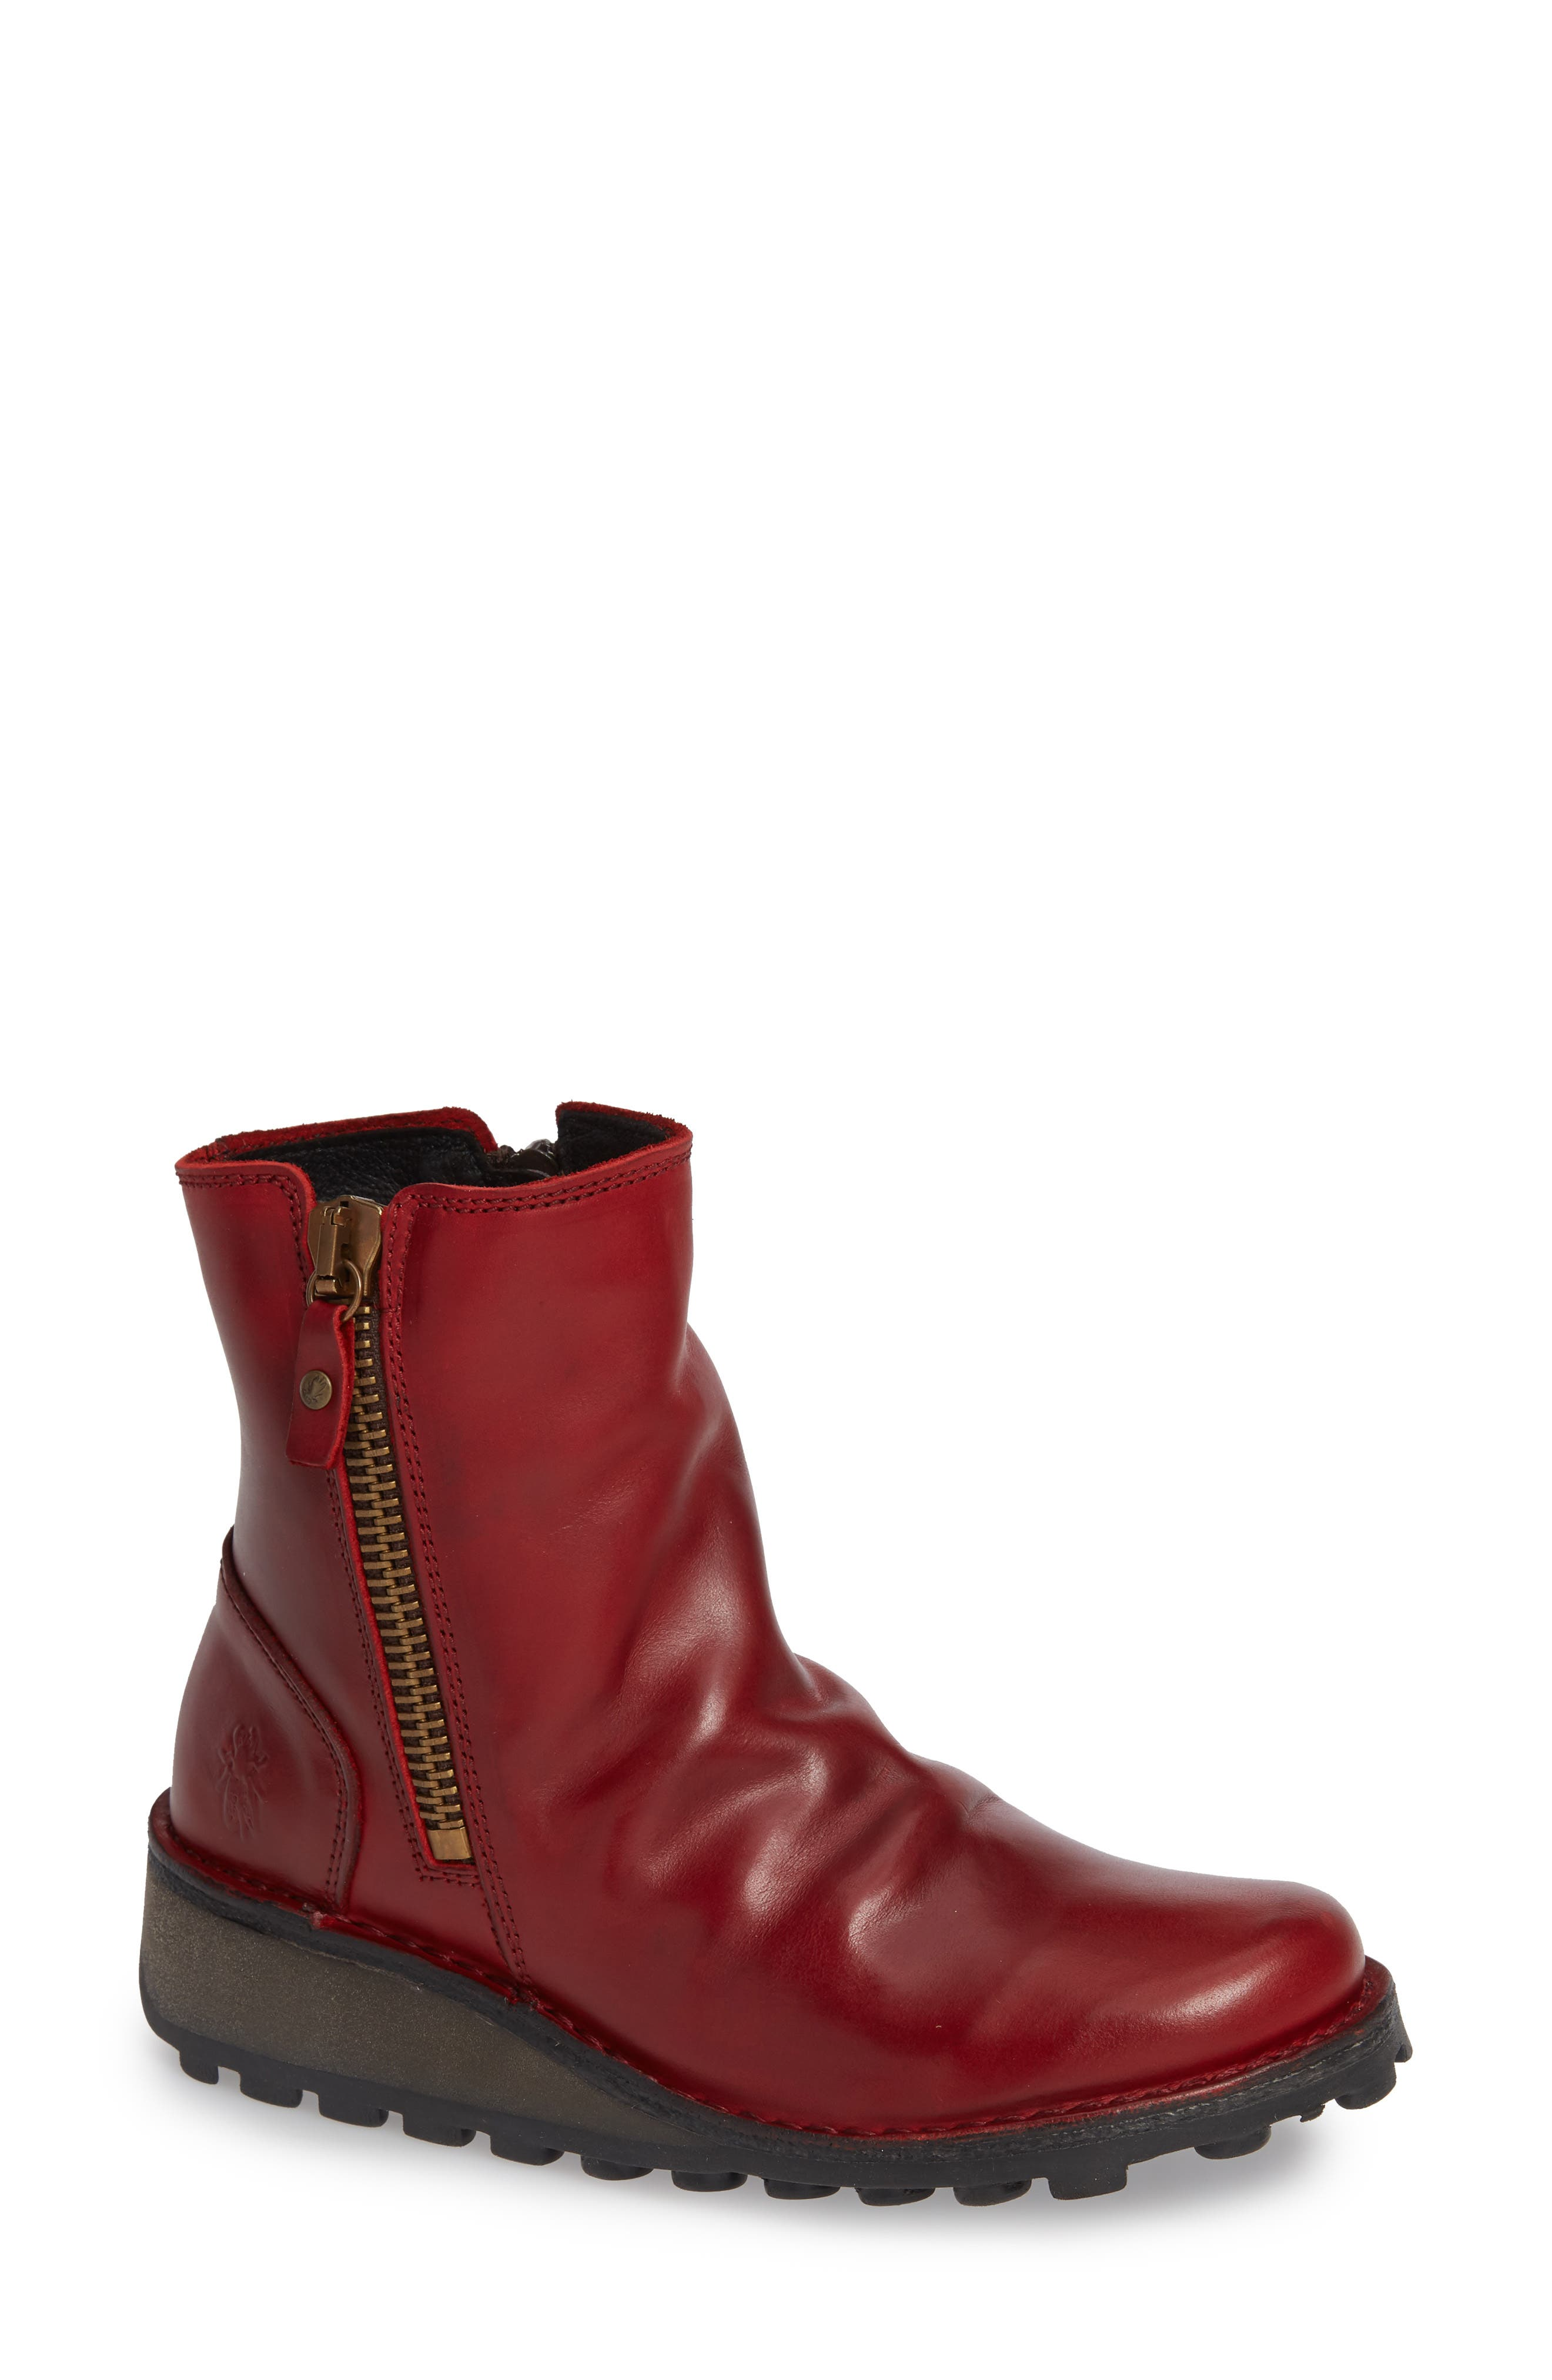 Mong Boot,                             Main thumbnail 1, color,                             RED